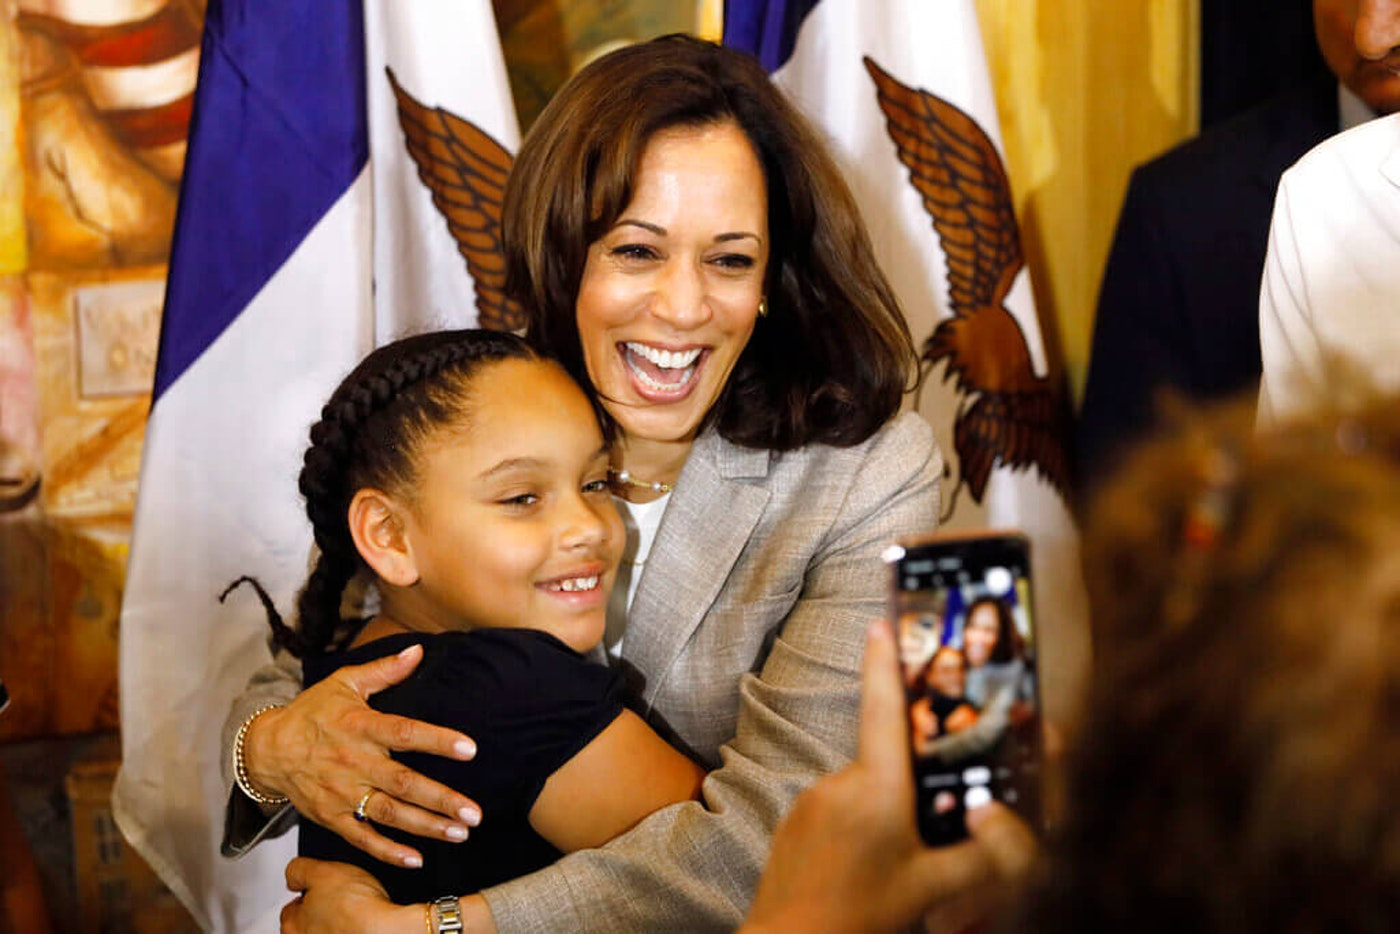 The Reason Kamala Harris Could Help Drive Latino Voters To The Polls